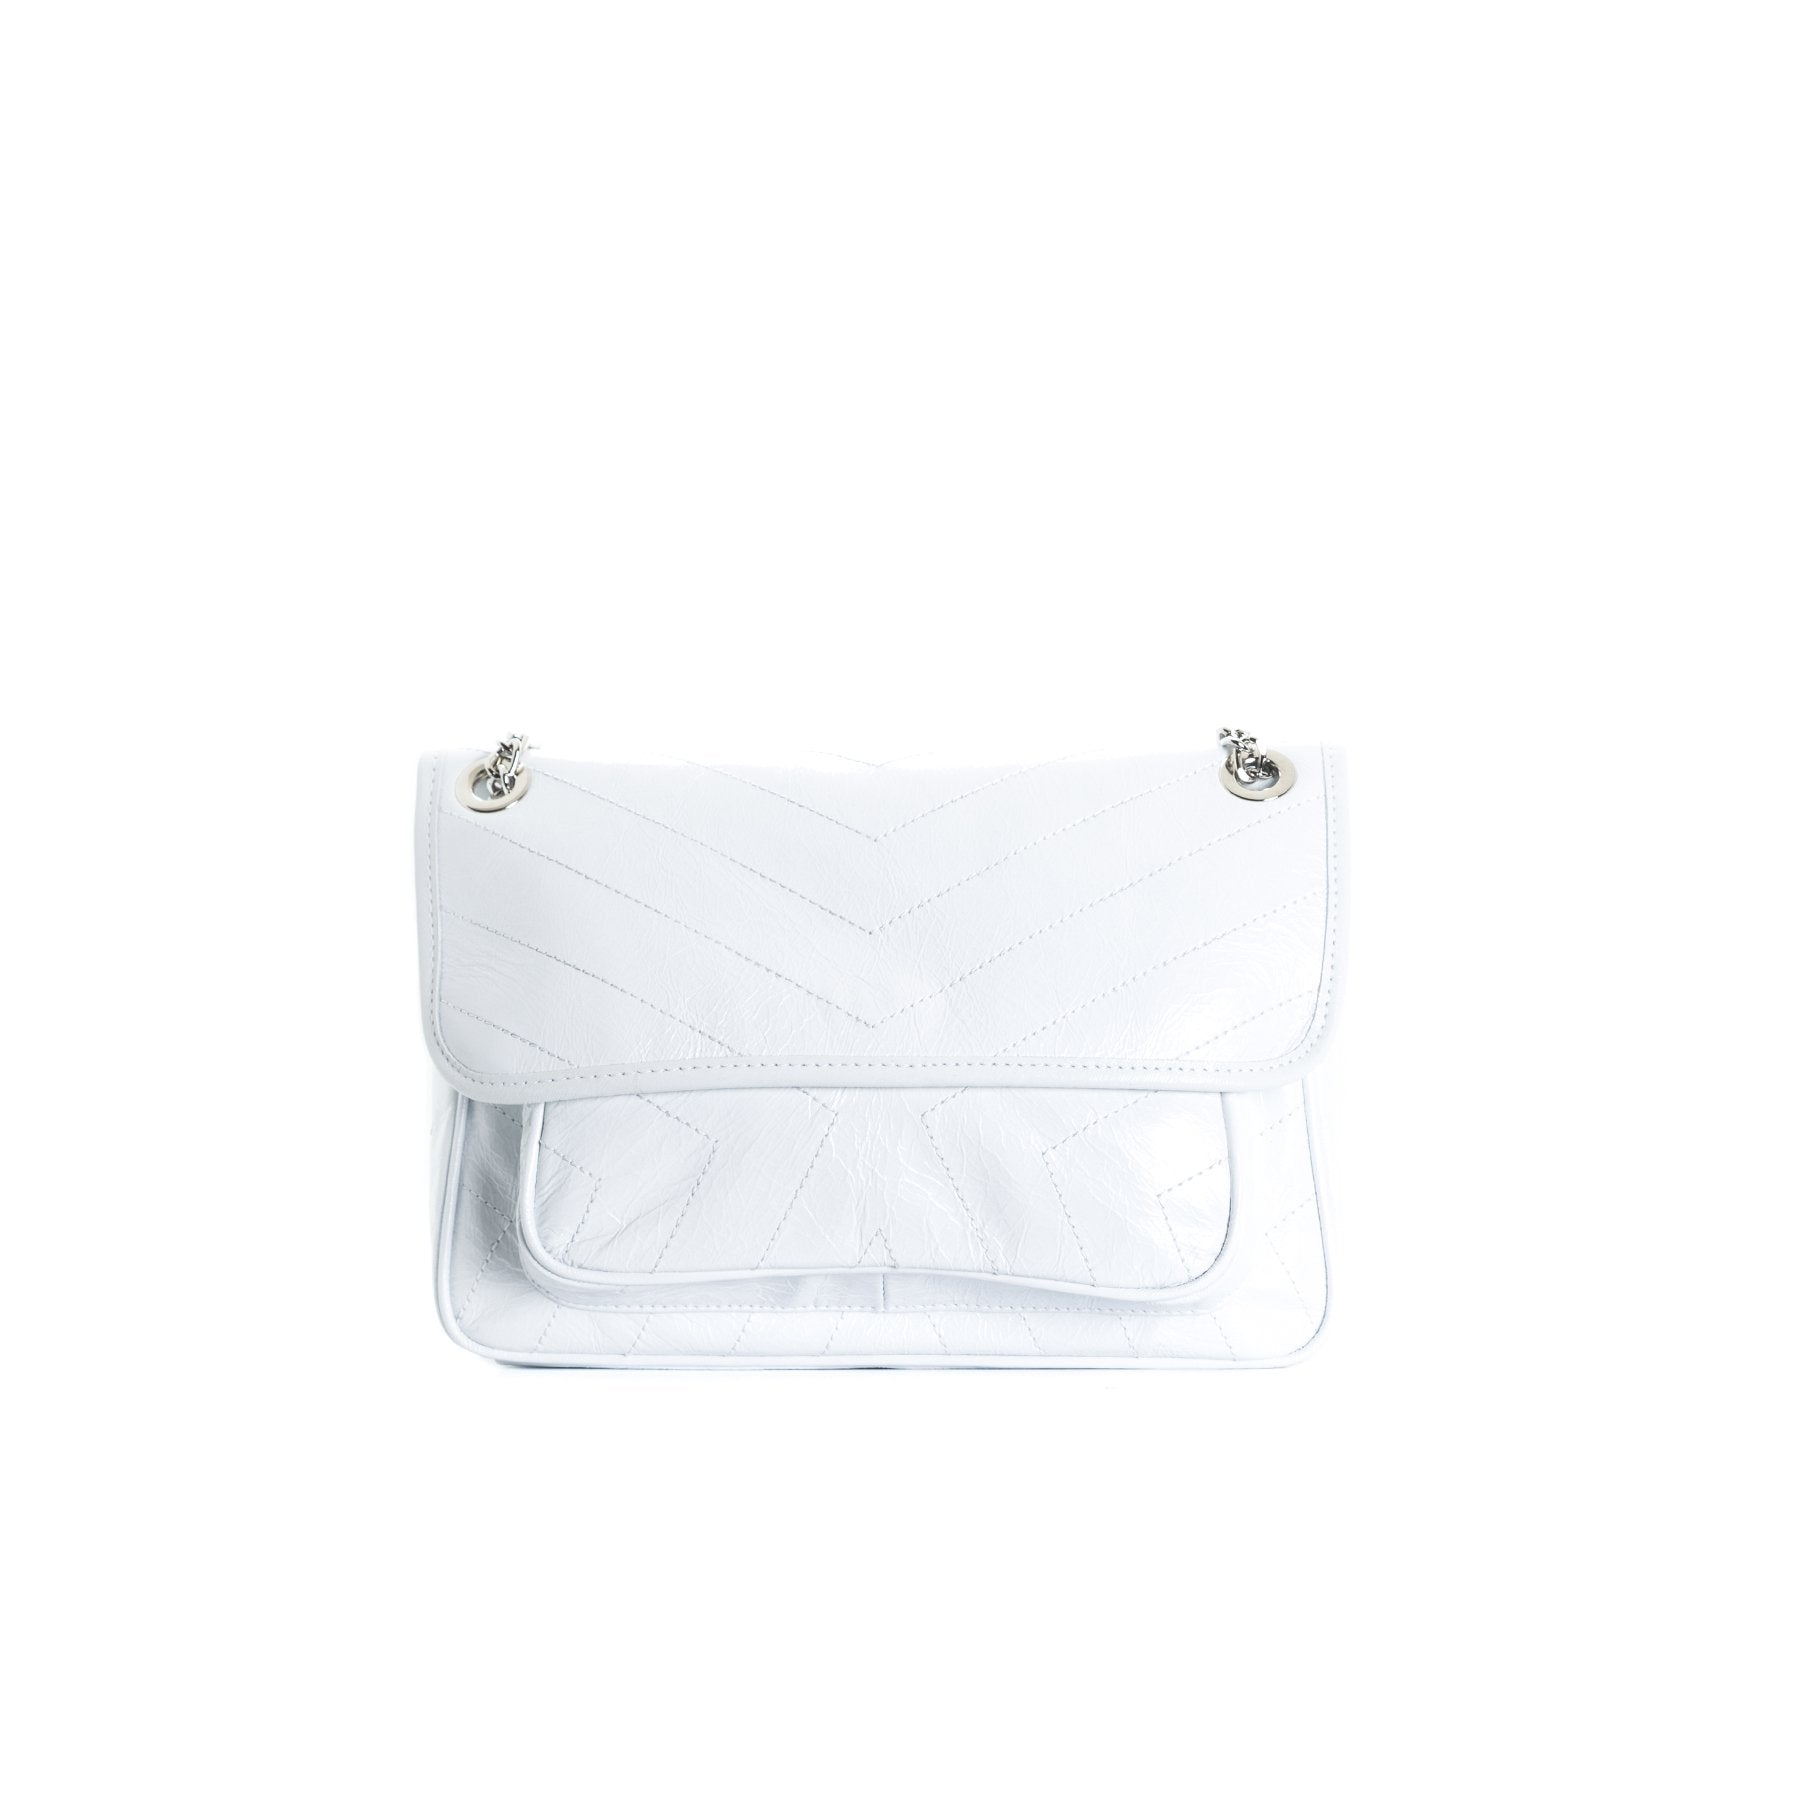 Amante White Leather Shoulder Bags